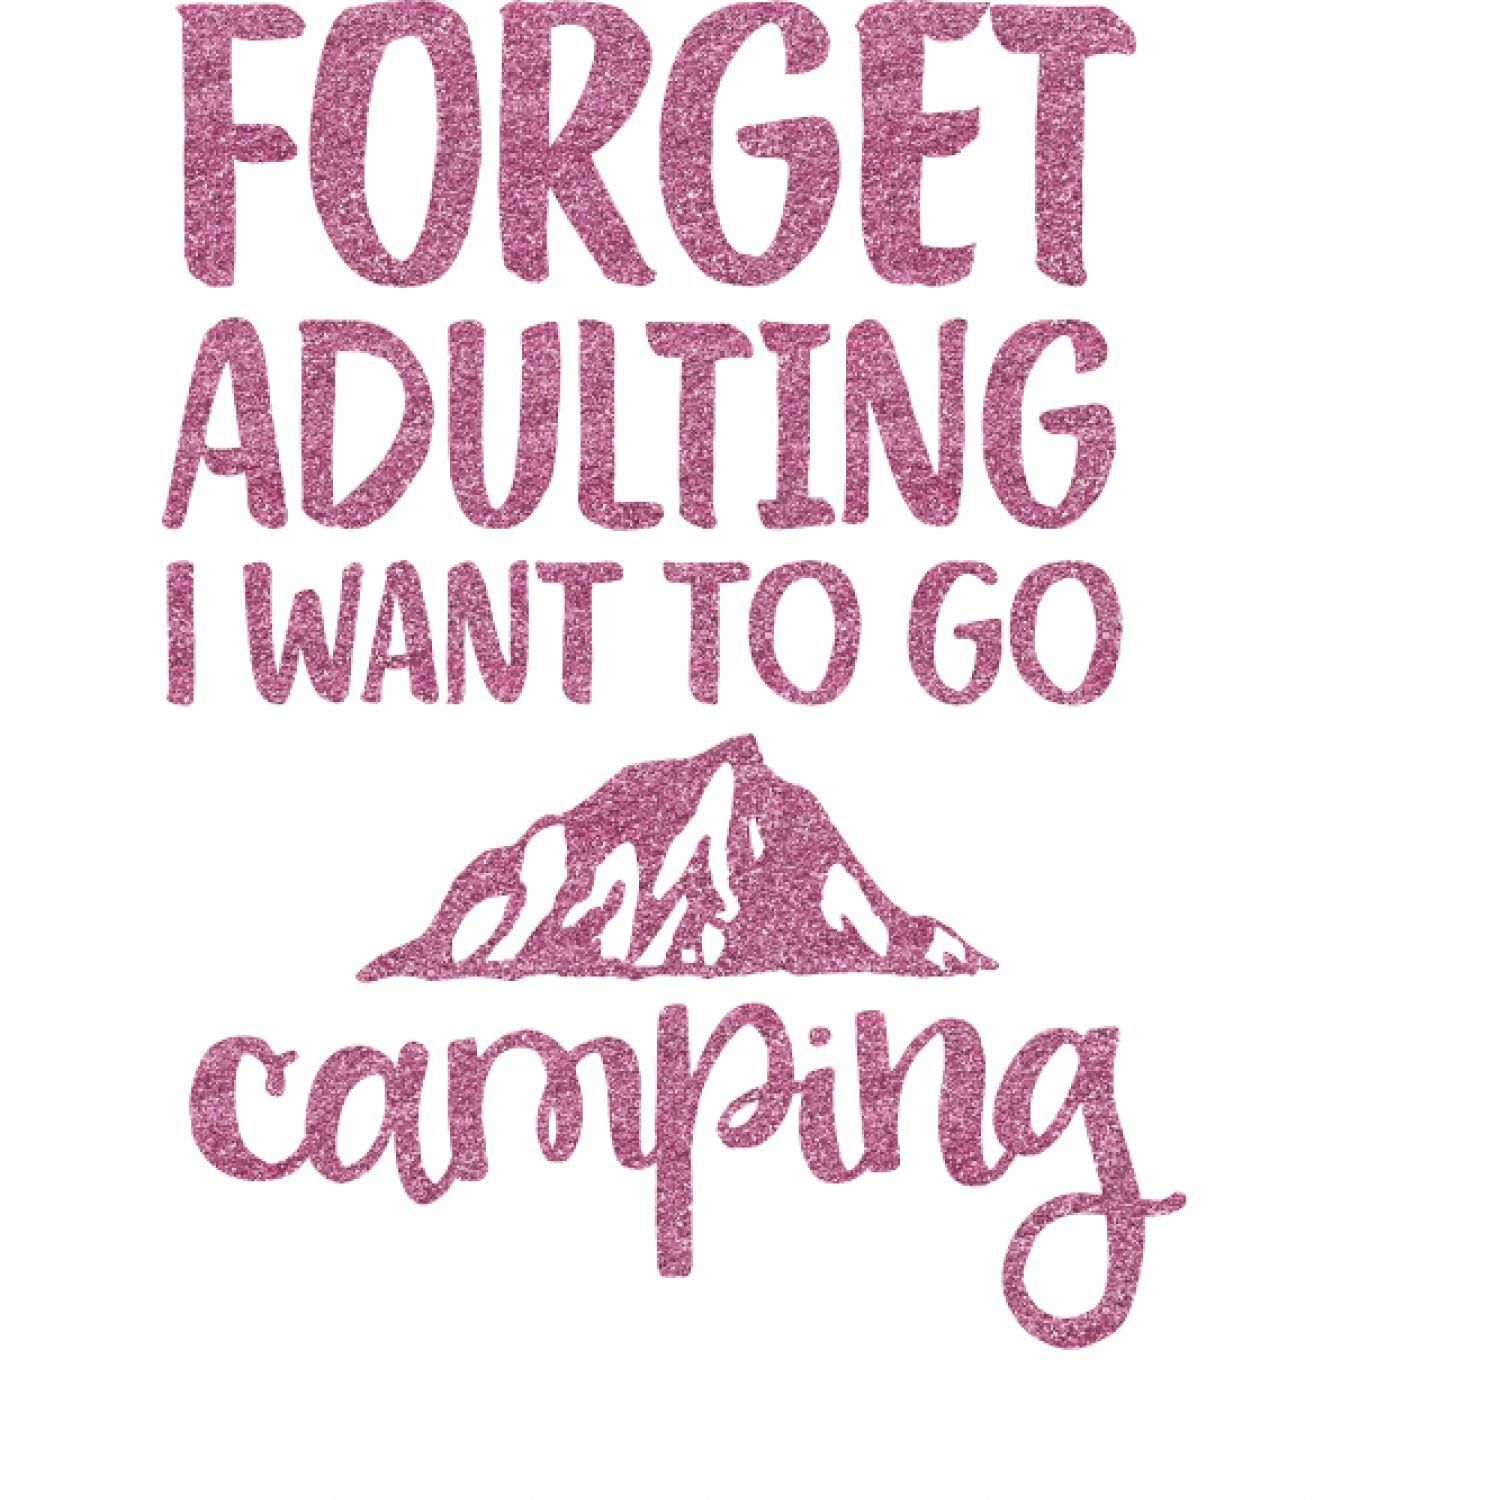 If You Love Funny Camping Quotes Great Camp Days With Family These Fun Camper Merch And Apparel Is Camping Quotes Funny Nature Quotes Funny Quotes For Teens